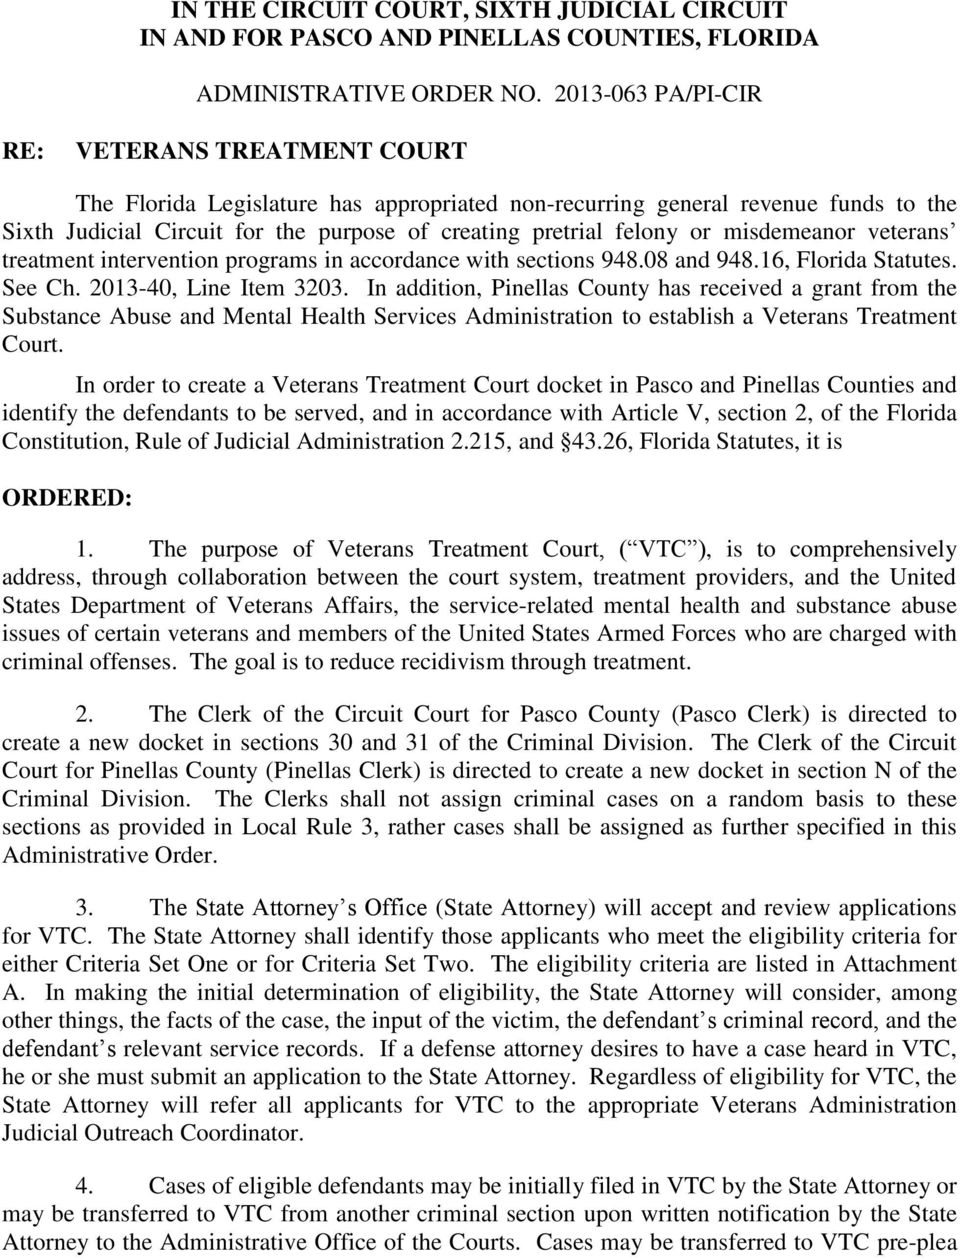 or misdemeanor veterans treatment intervention programs in accordance with sections 948.08 and 948.16, Florida Statutes. See Ch. 2013-40, Line Item 3203.